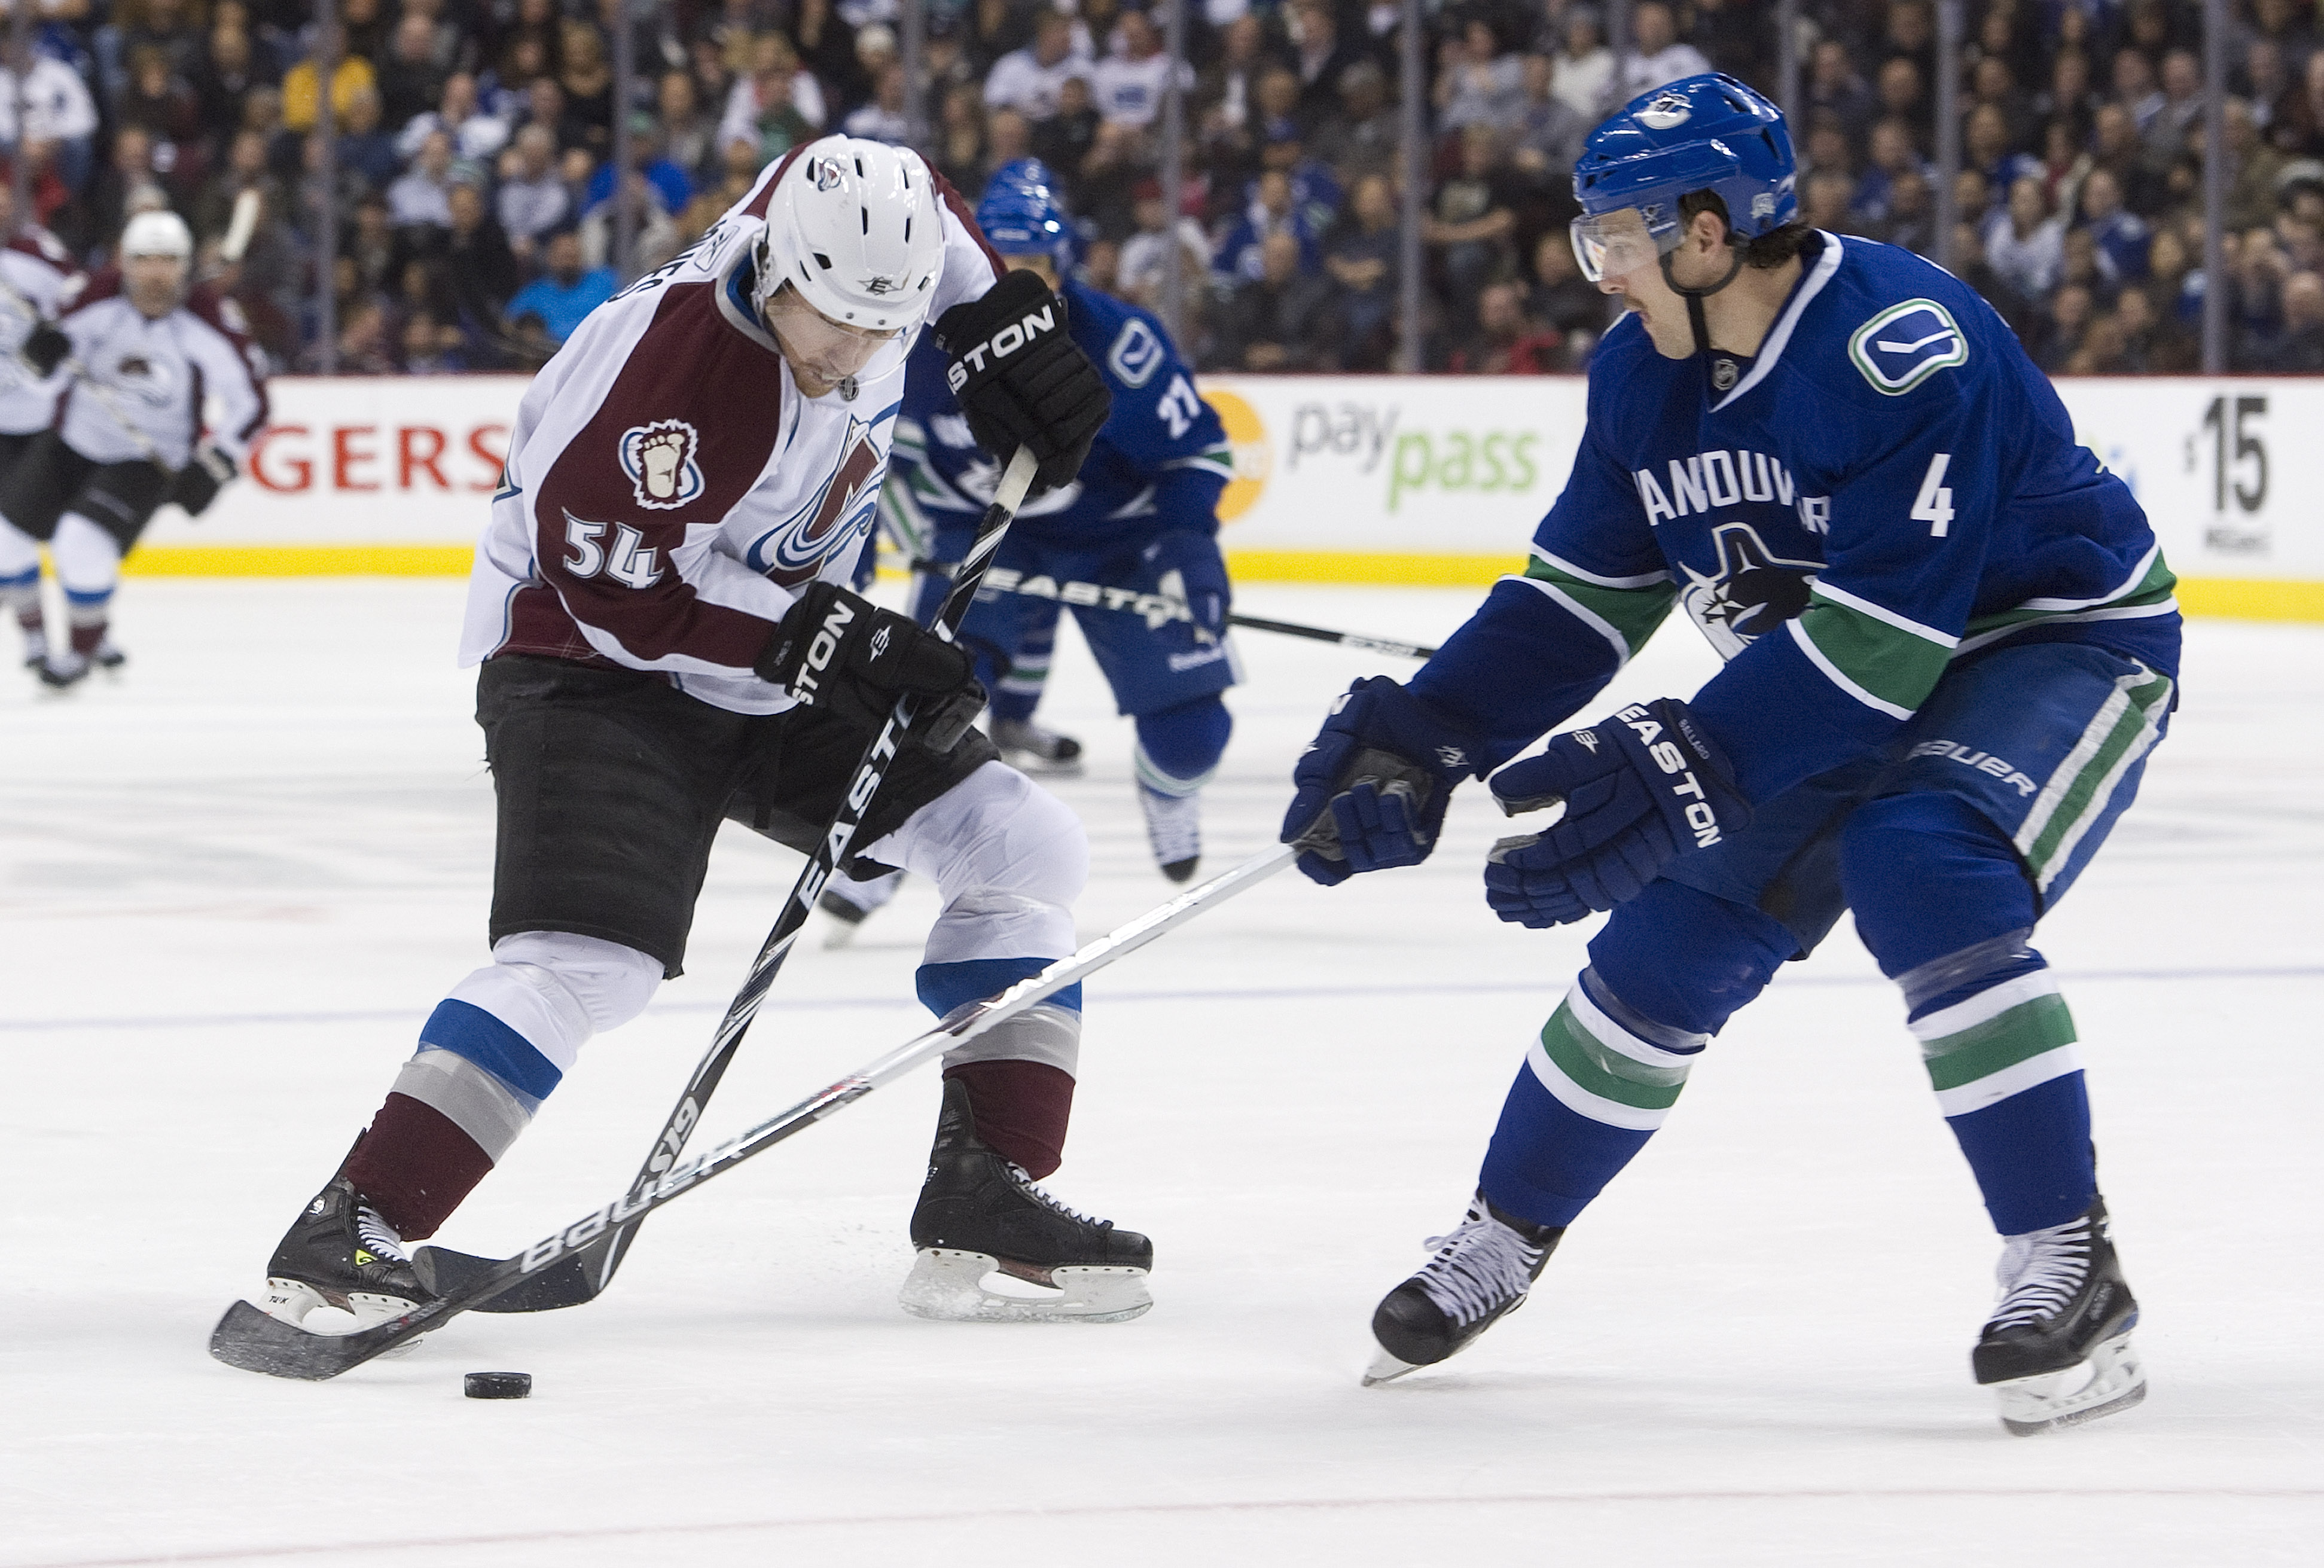 VANCOUVER, CANADA - NOVEMBER 24: David Jones #54 of the Colorado Avalanche tries to makes a move to get past Keith Ballard #4 of the Vancouver Canucks during the third period in NHL action on November 24, 2010 at Rogers Arena in Vancouver, British Columbi